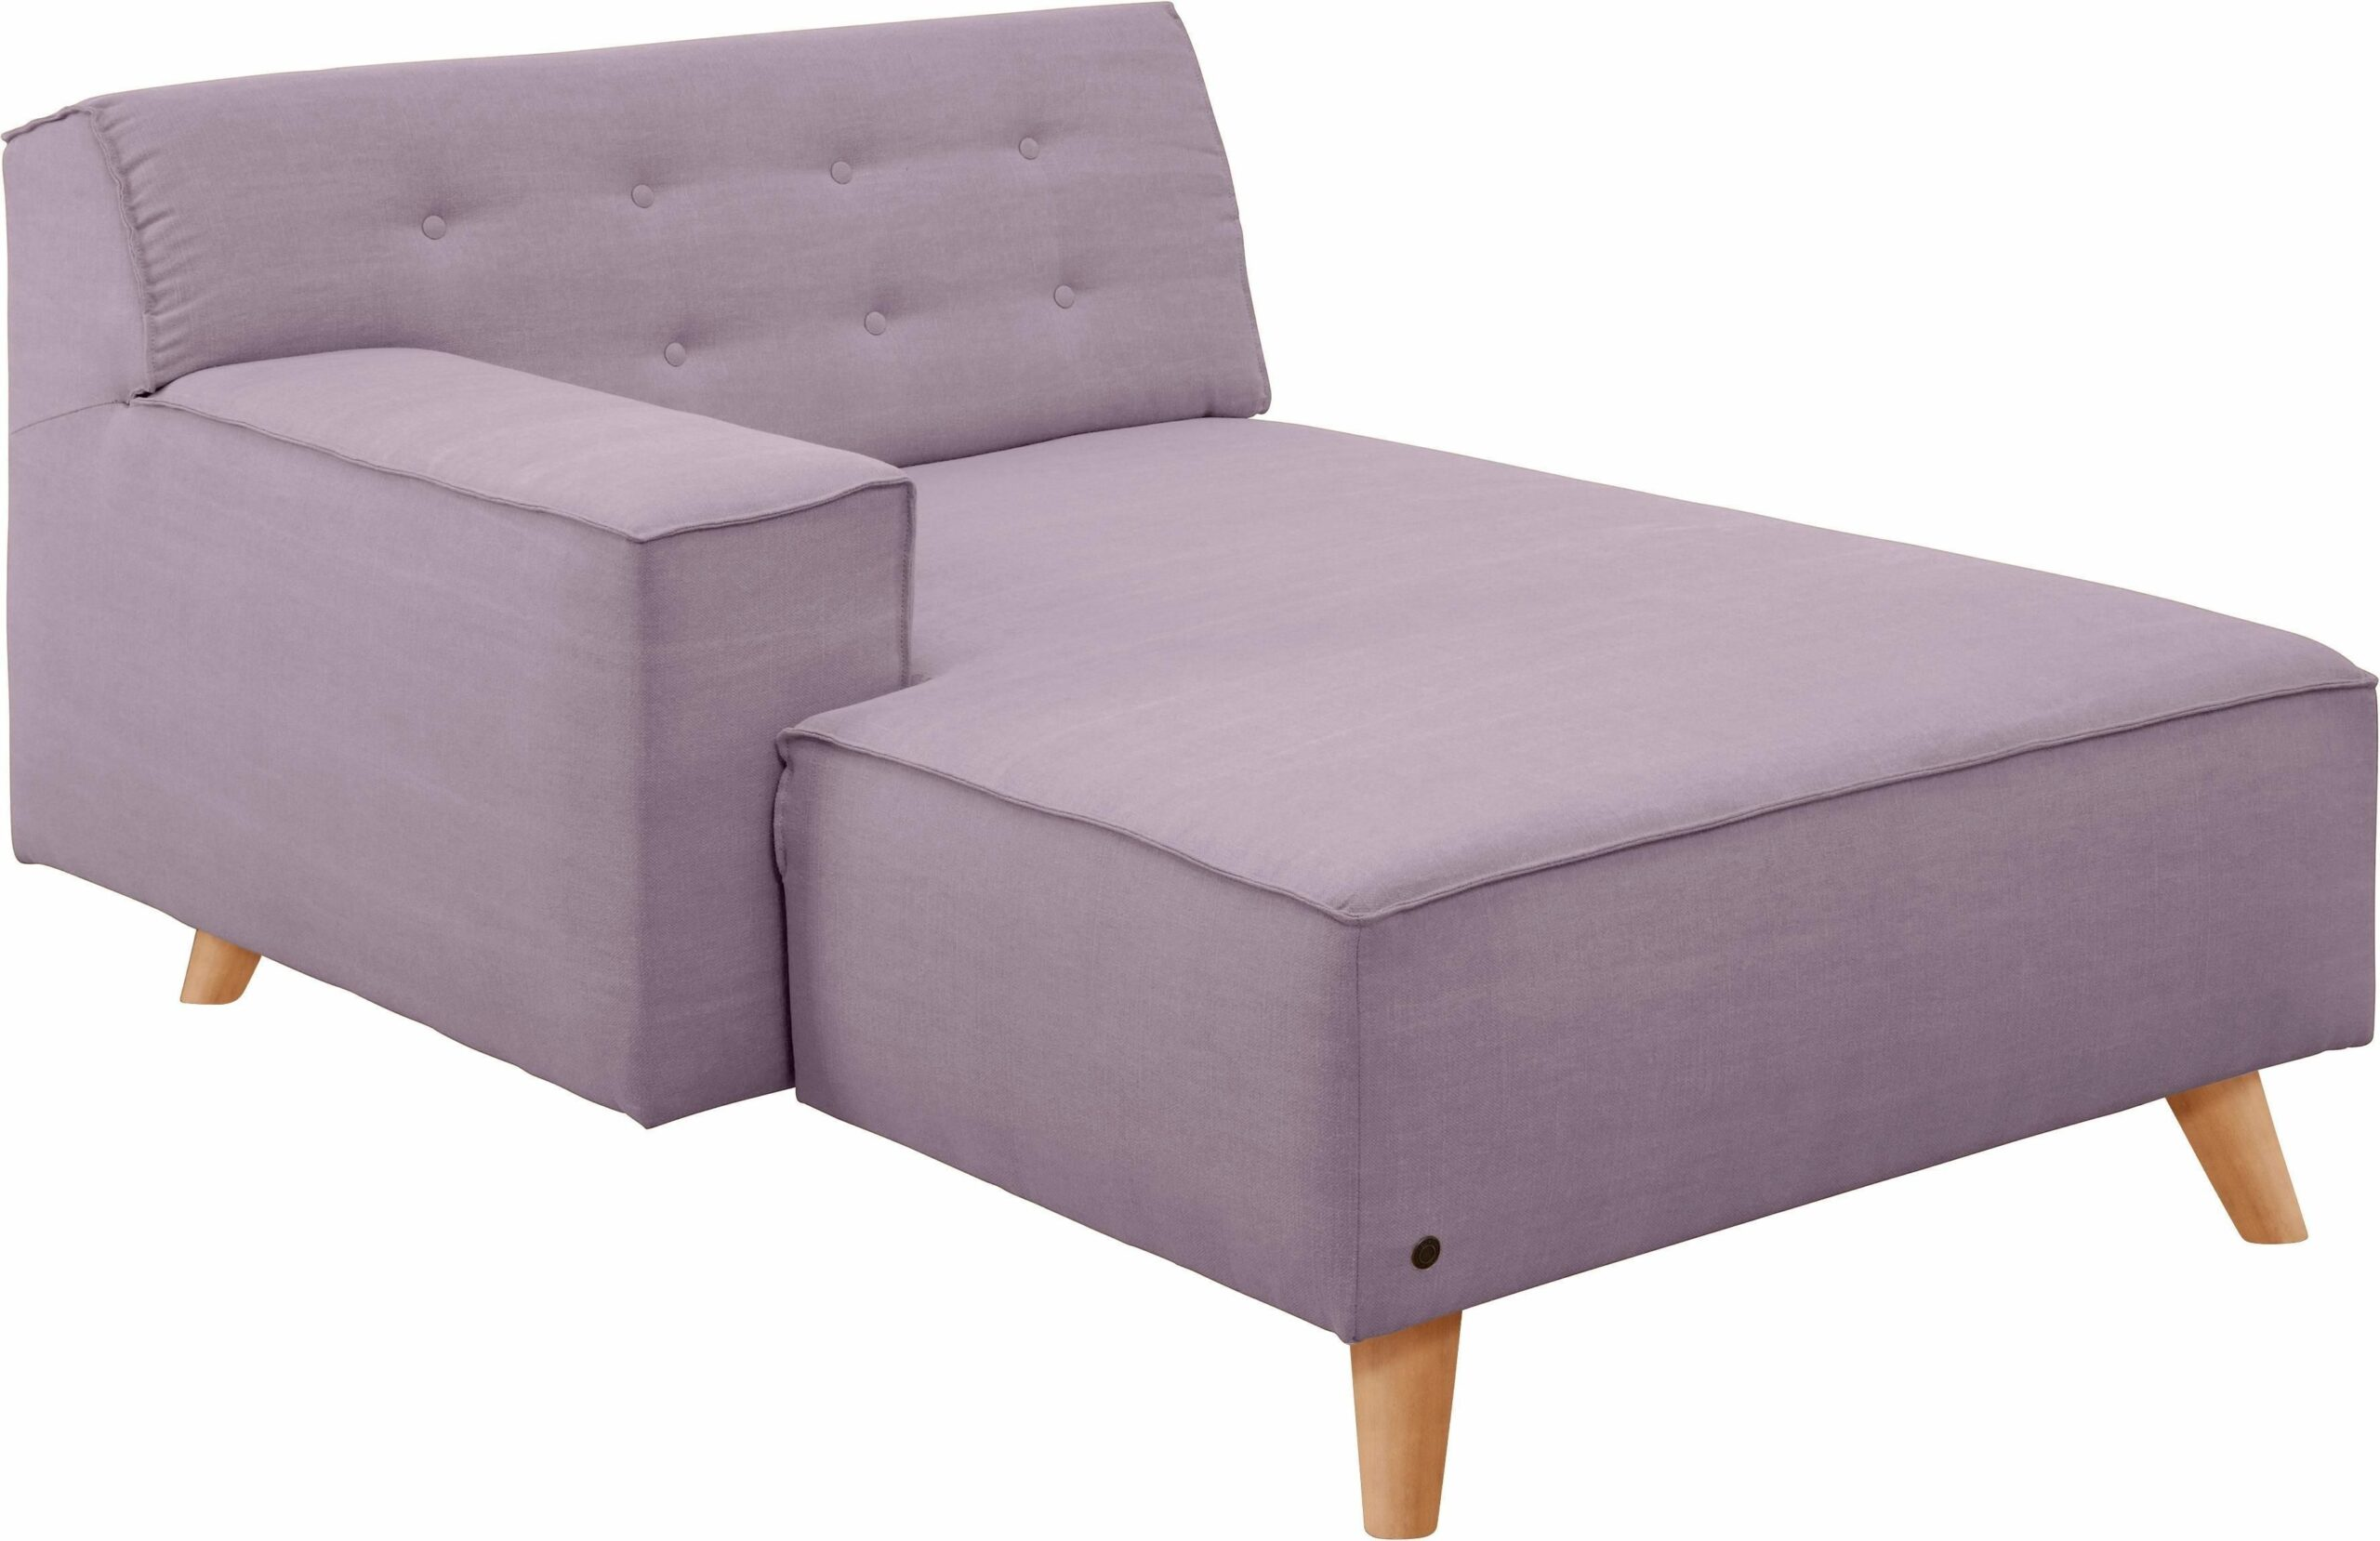 Full Size of Sofa Tom Tailor Big Cube Heaven Style West Coast Nordic Pure Otto Chic Xl Chaiselongue 2er Abnehmbarer Bezug Natura Lounge Garten Rolf Benz Ebay Für Esszimmer Sofa Sofa Tom Tailor